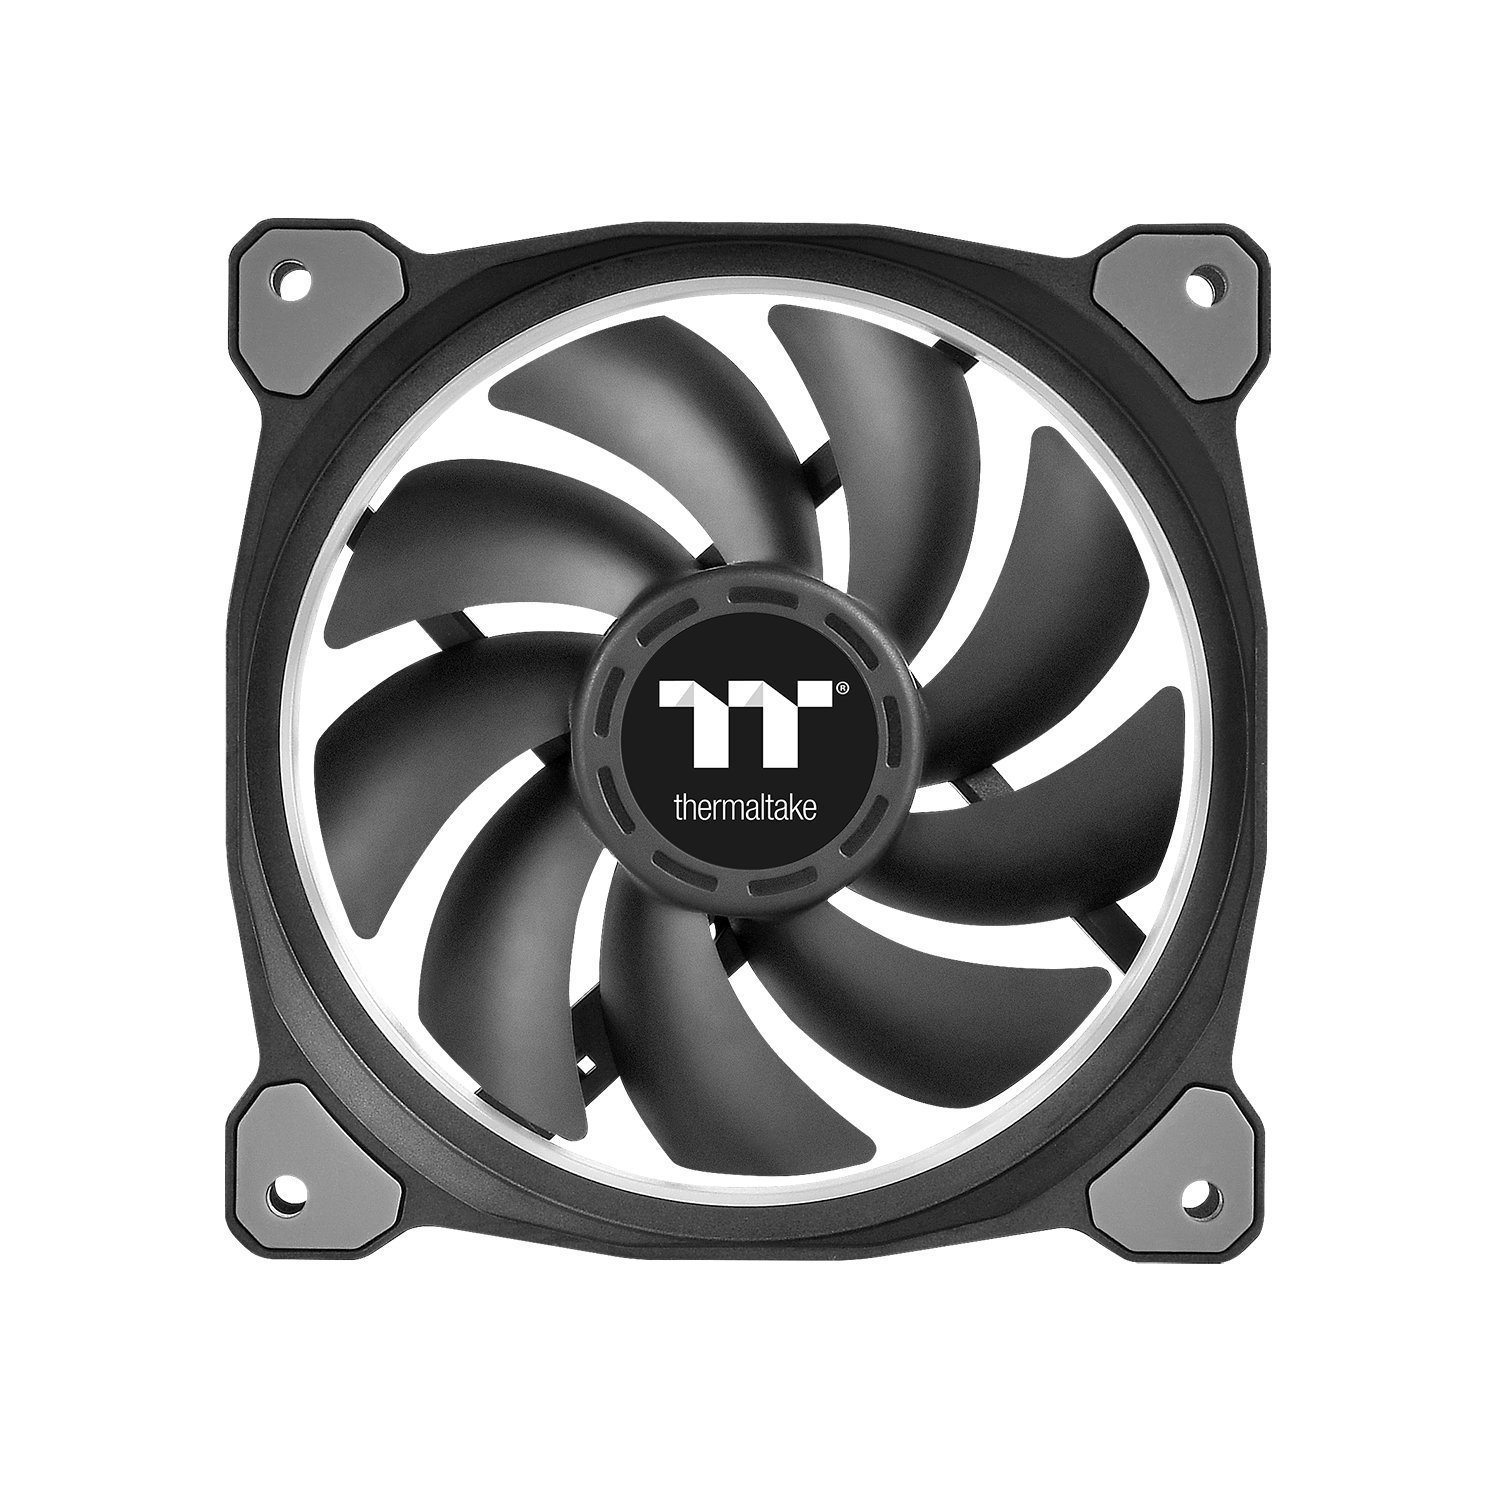 Thermaltake Riing Plus 14 RGB Tt Premium Edition 140mm Software Enabled Case/Radiator Fan -Triple Pack- CL-F056-PL14SW-A by Thermaltake (Image #3)